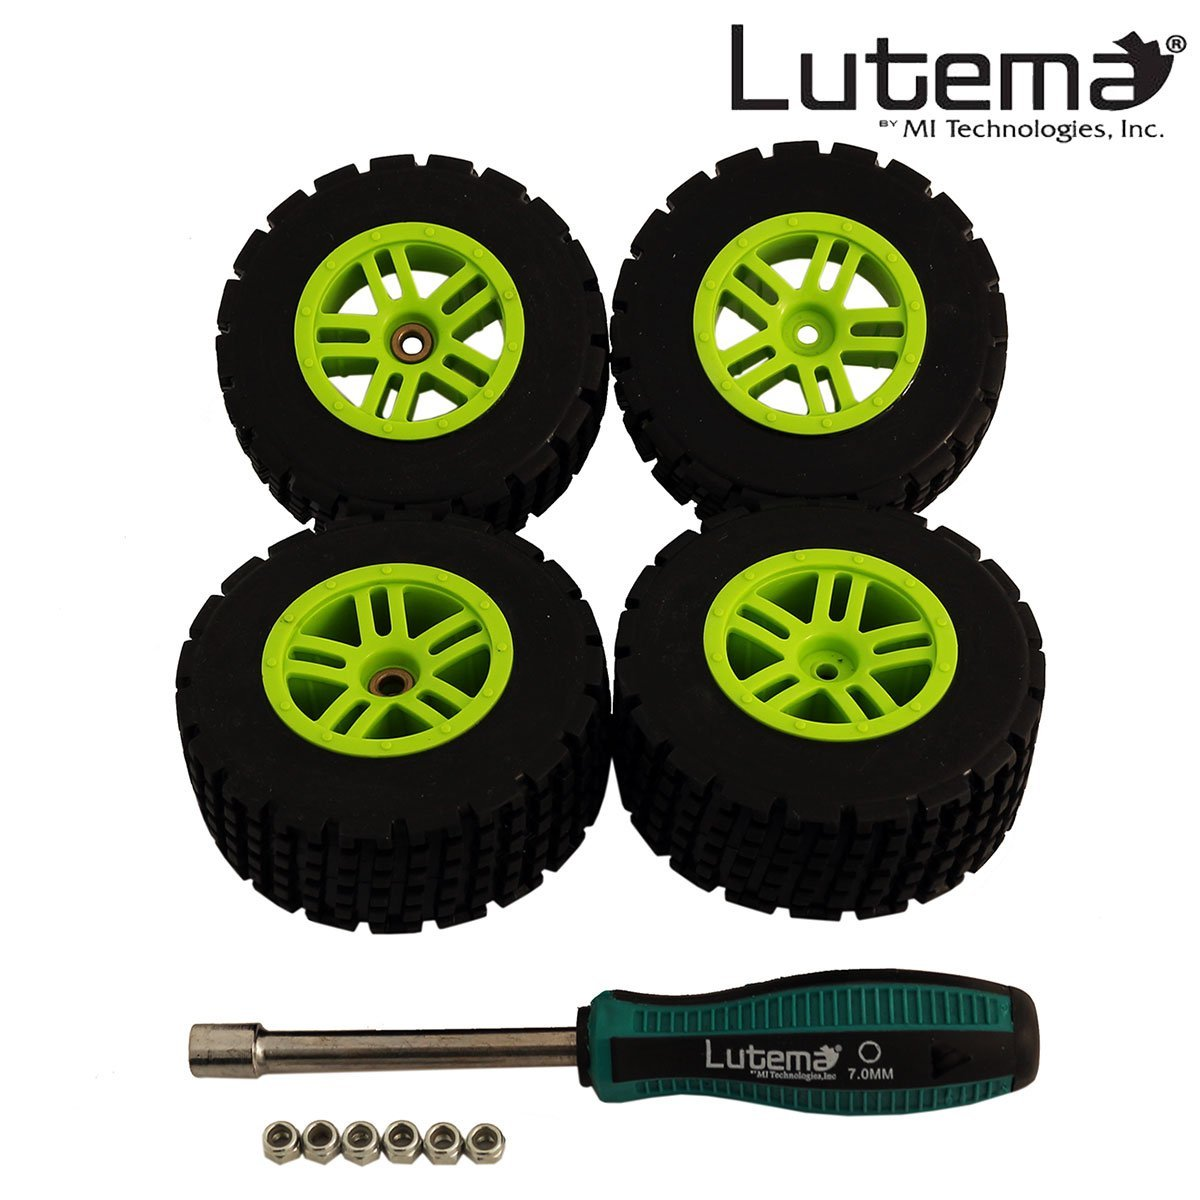 Lutema Hyp-R-Baja 2.4Ghz Baja King Complete Set of Color Wheels With Tires - Green